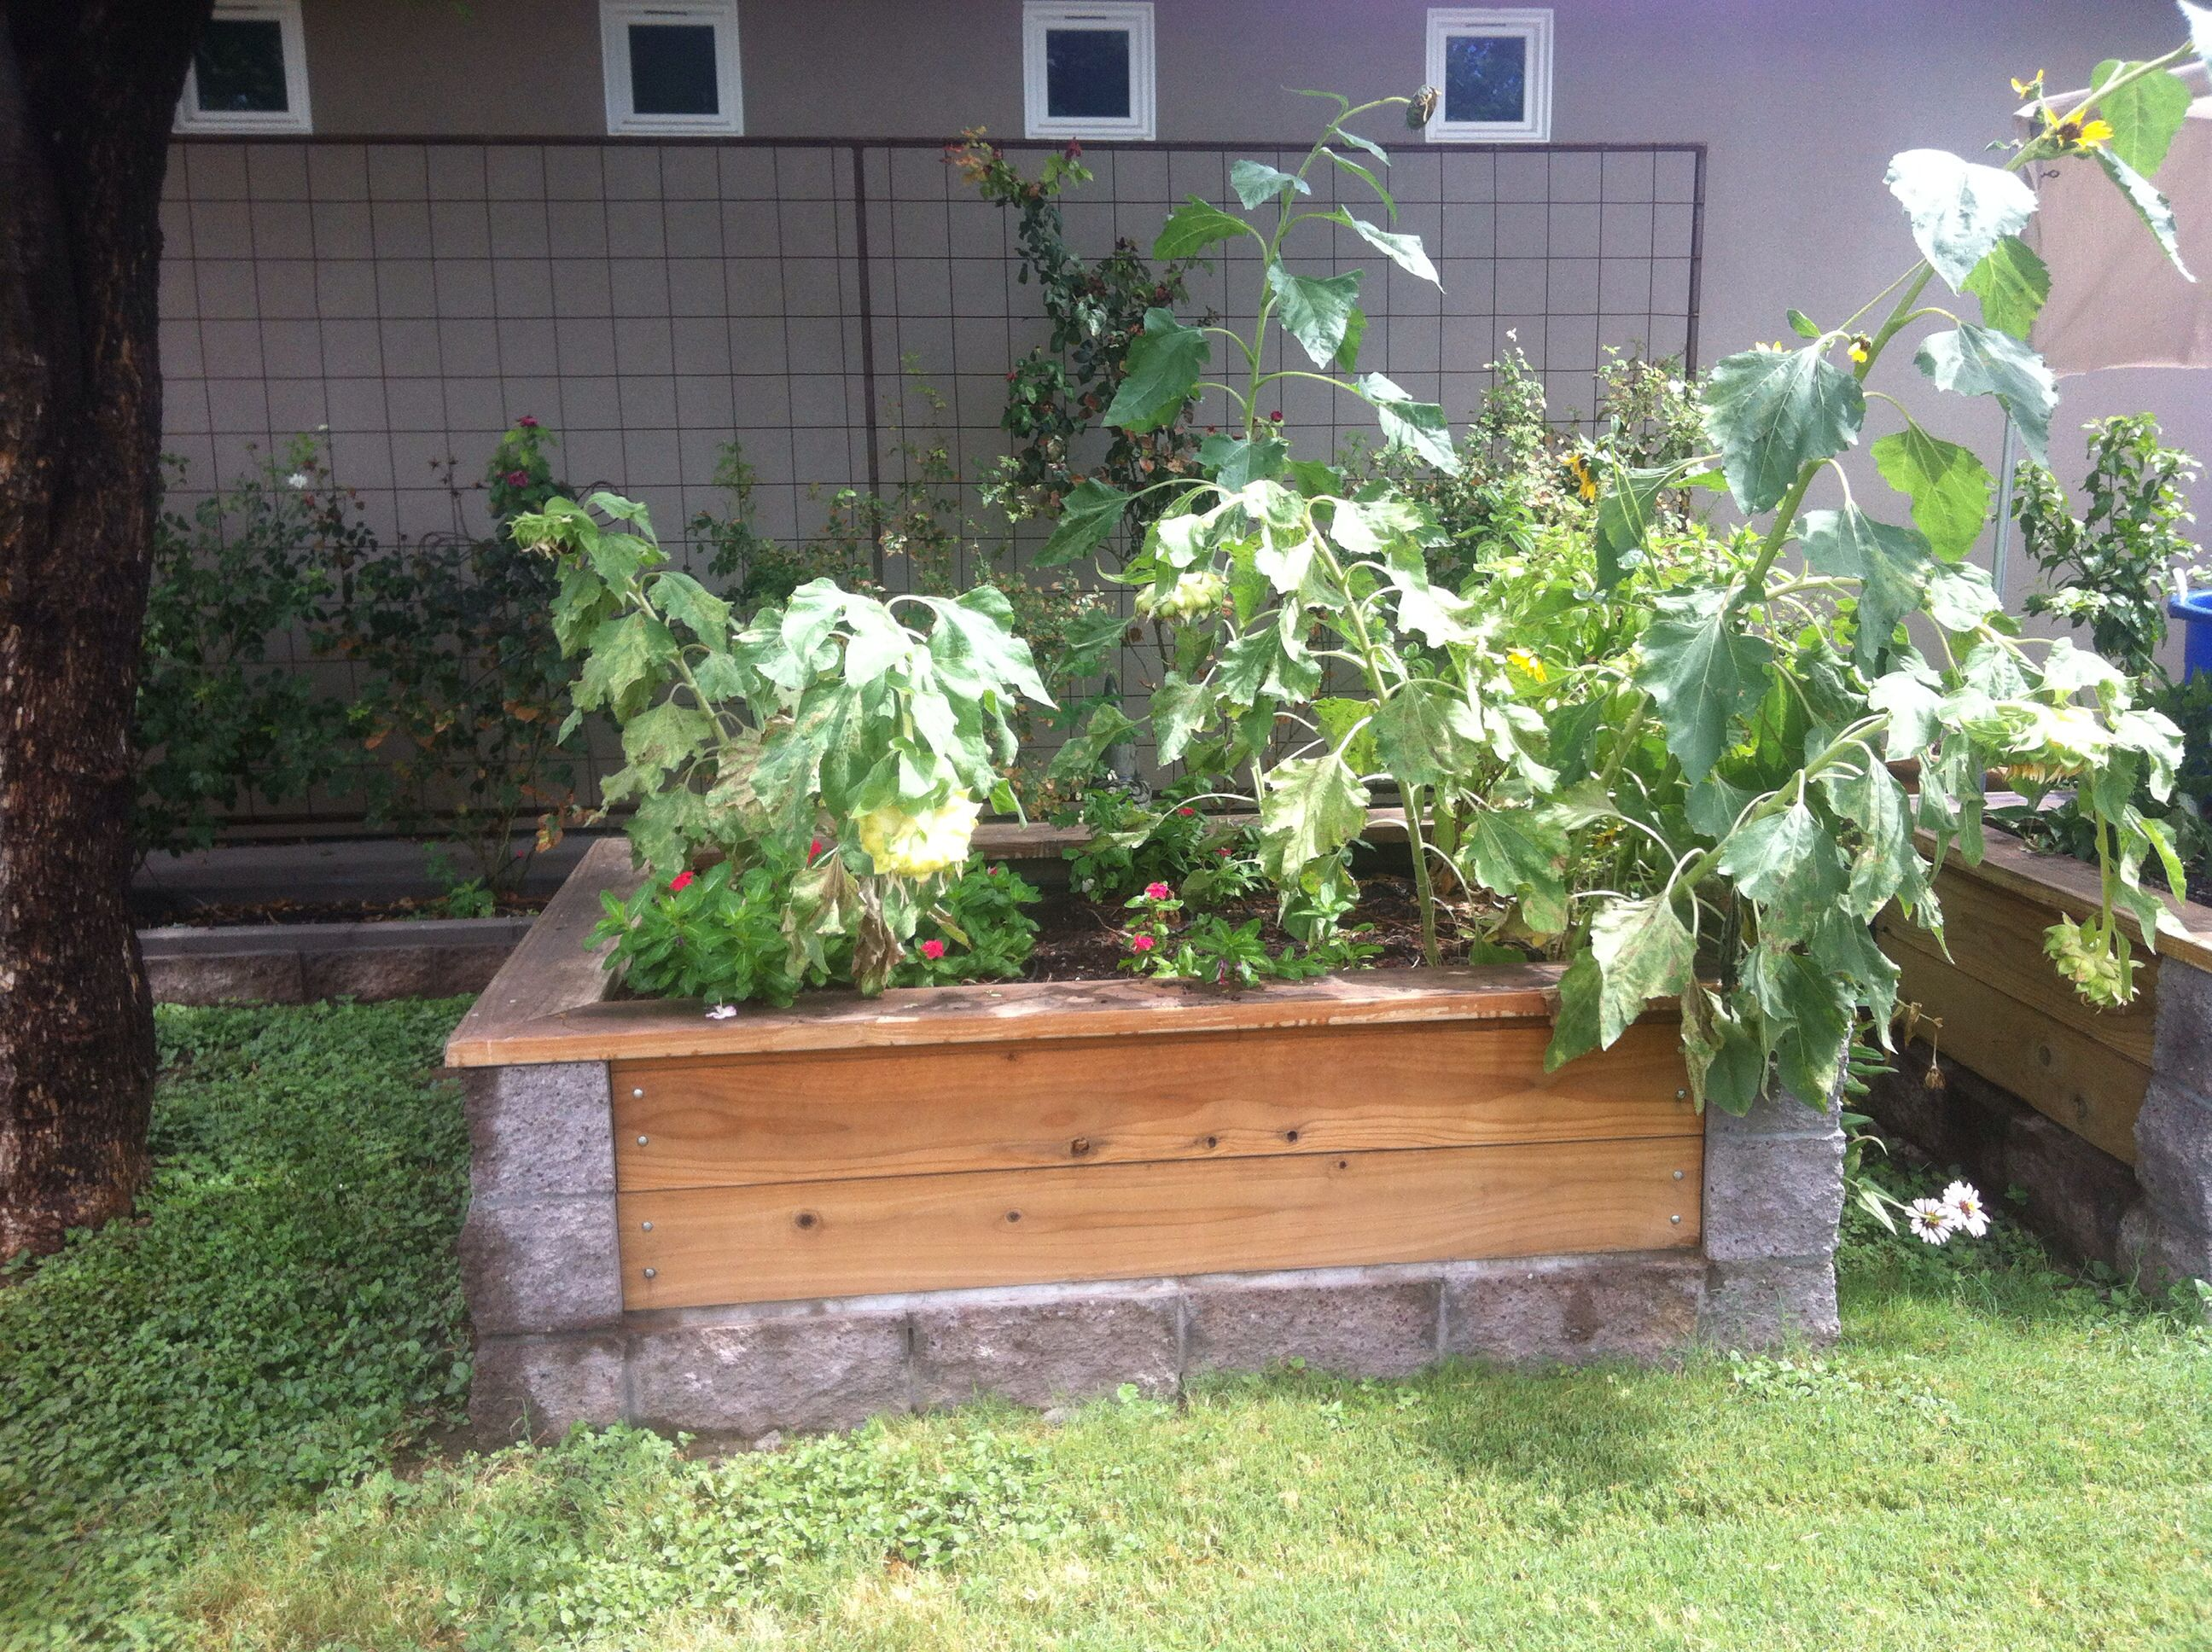 Cinder block and wood garden bed | backyard heaven | Pinterest ...